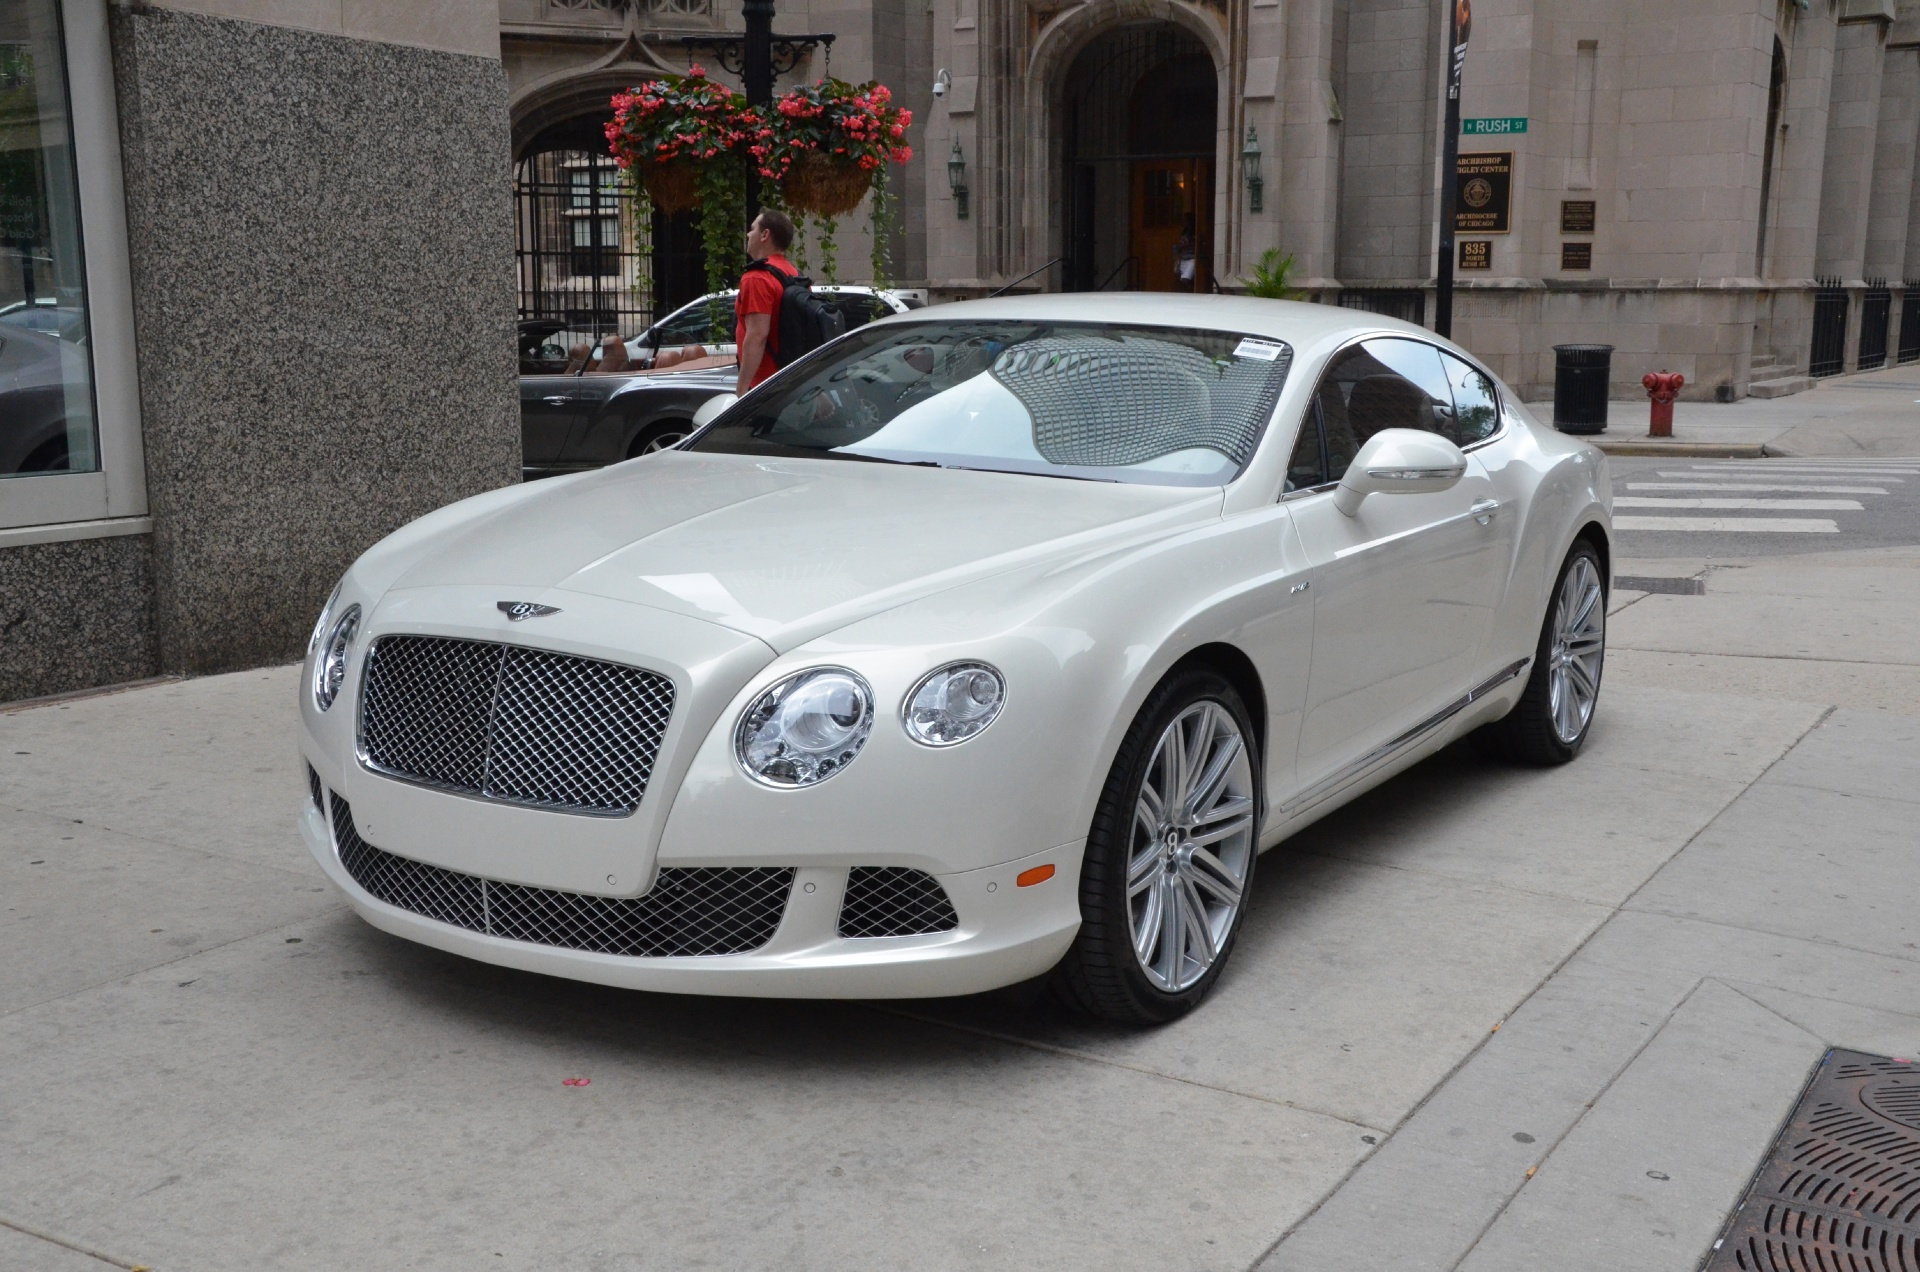 2014 bentley continental gt speed used bentley used rolls royce used lamborghini used. Black Bedroom Furniture Sets. Home Design Ideas